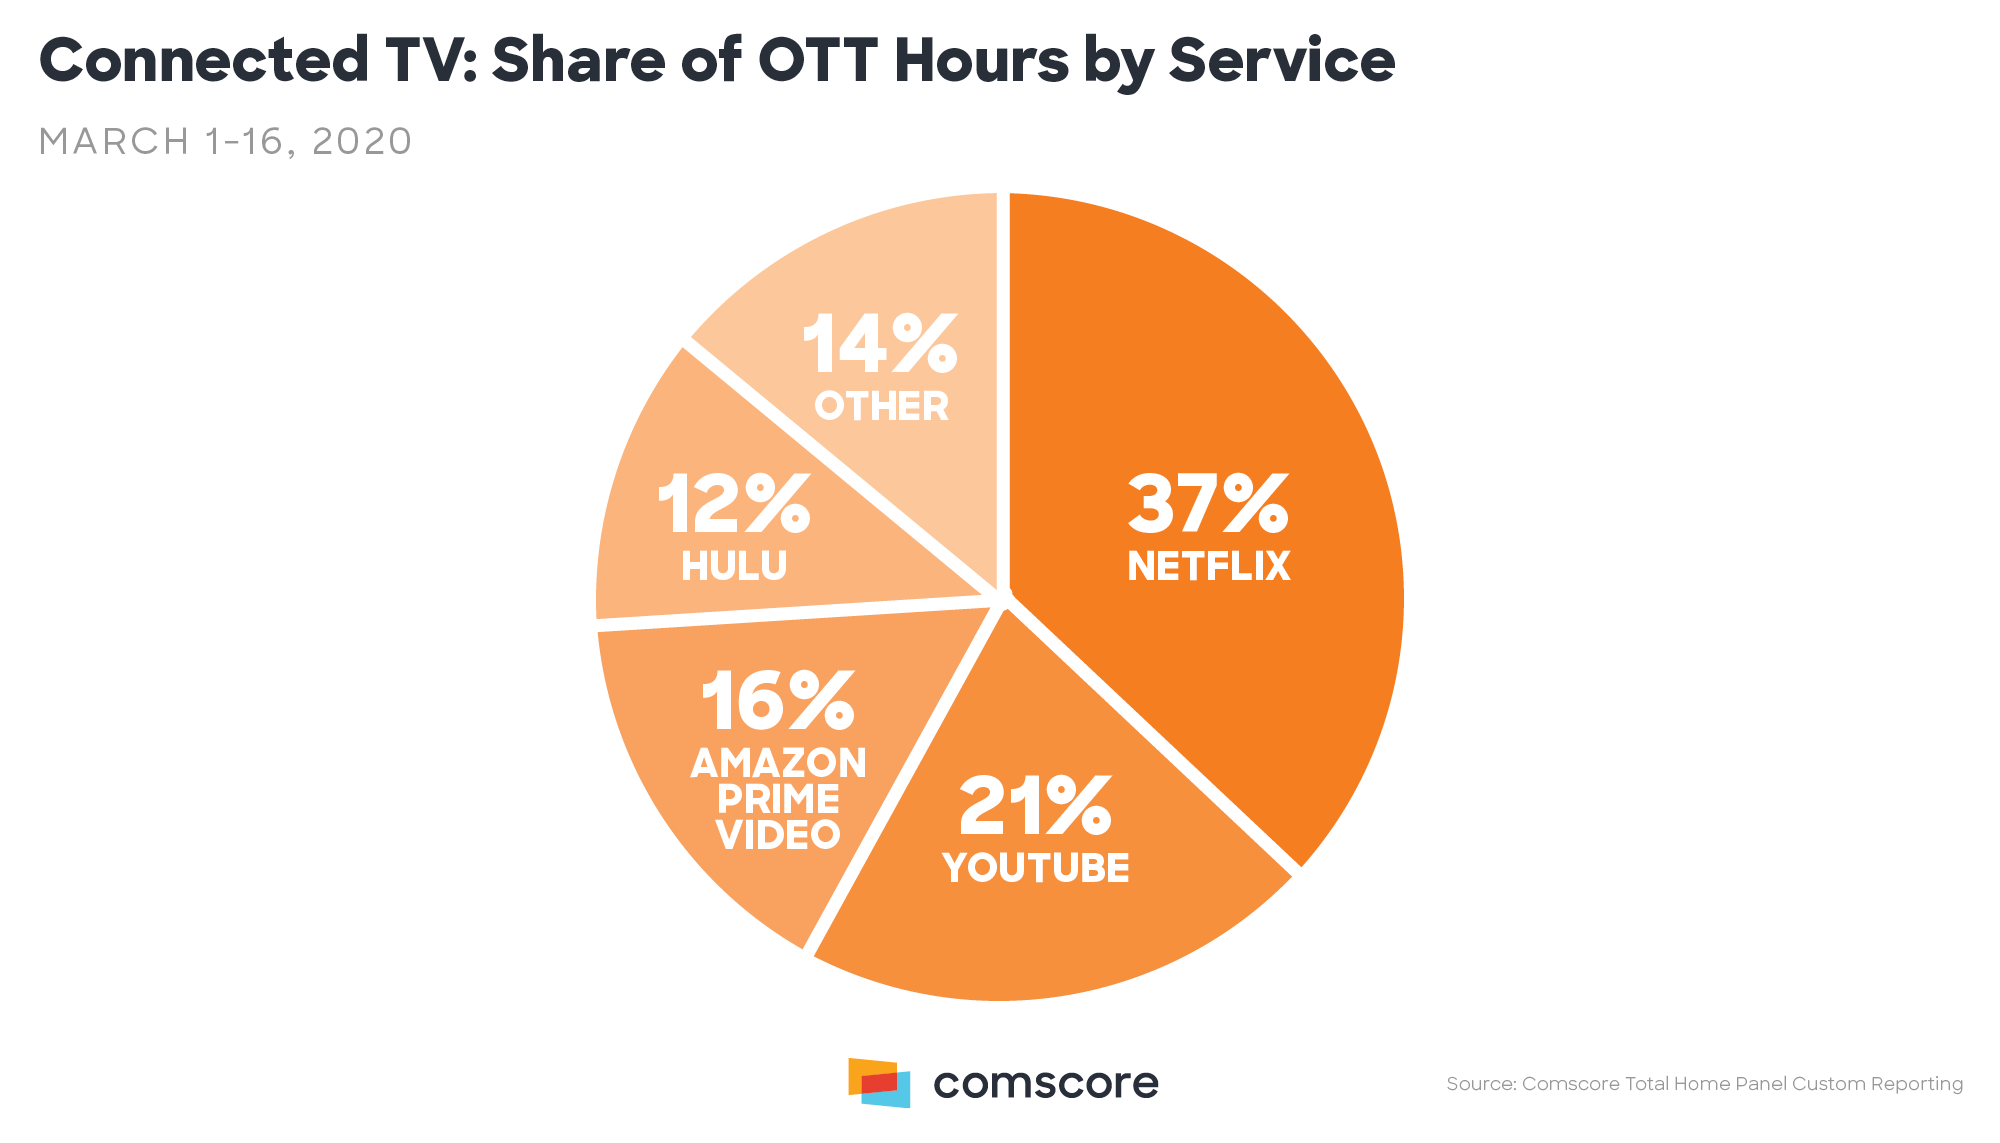 Coronavirus - Share of OTT hours by Service